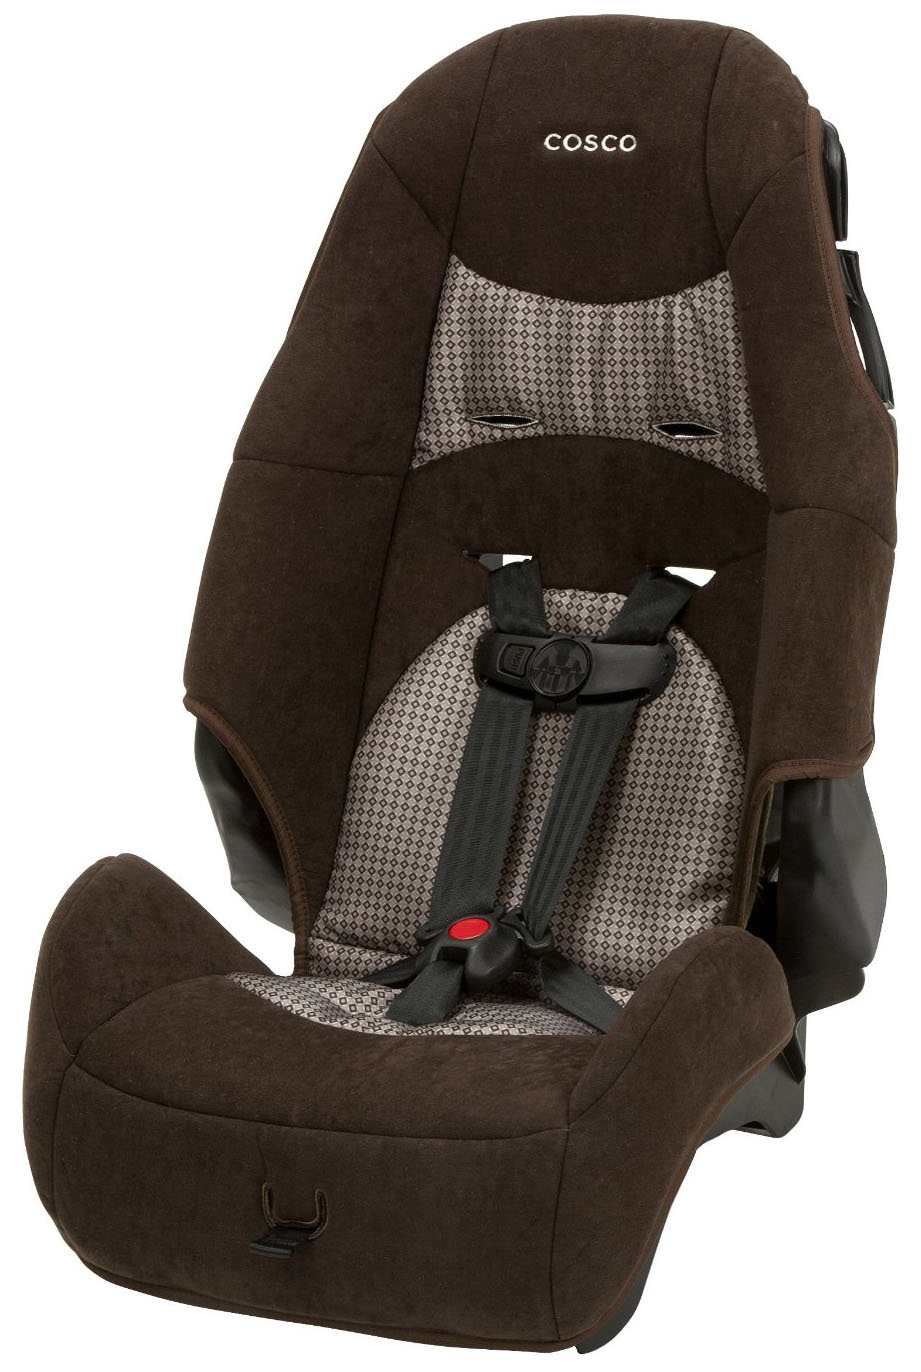 High Back Booster Car Seat >> Cosco High Back Booster Car Seat for $44.90